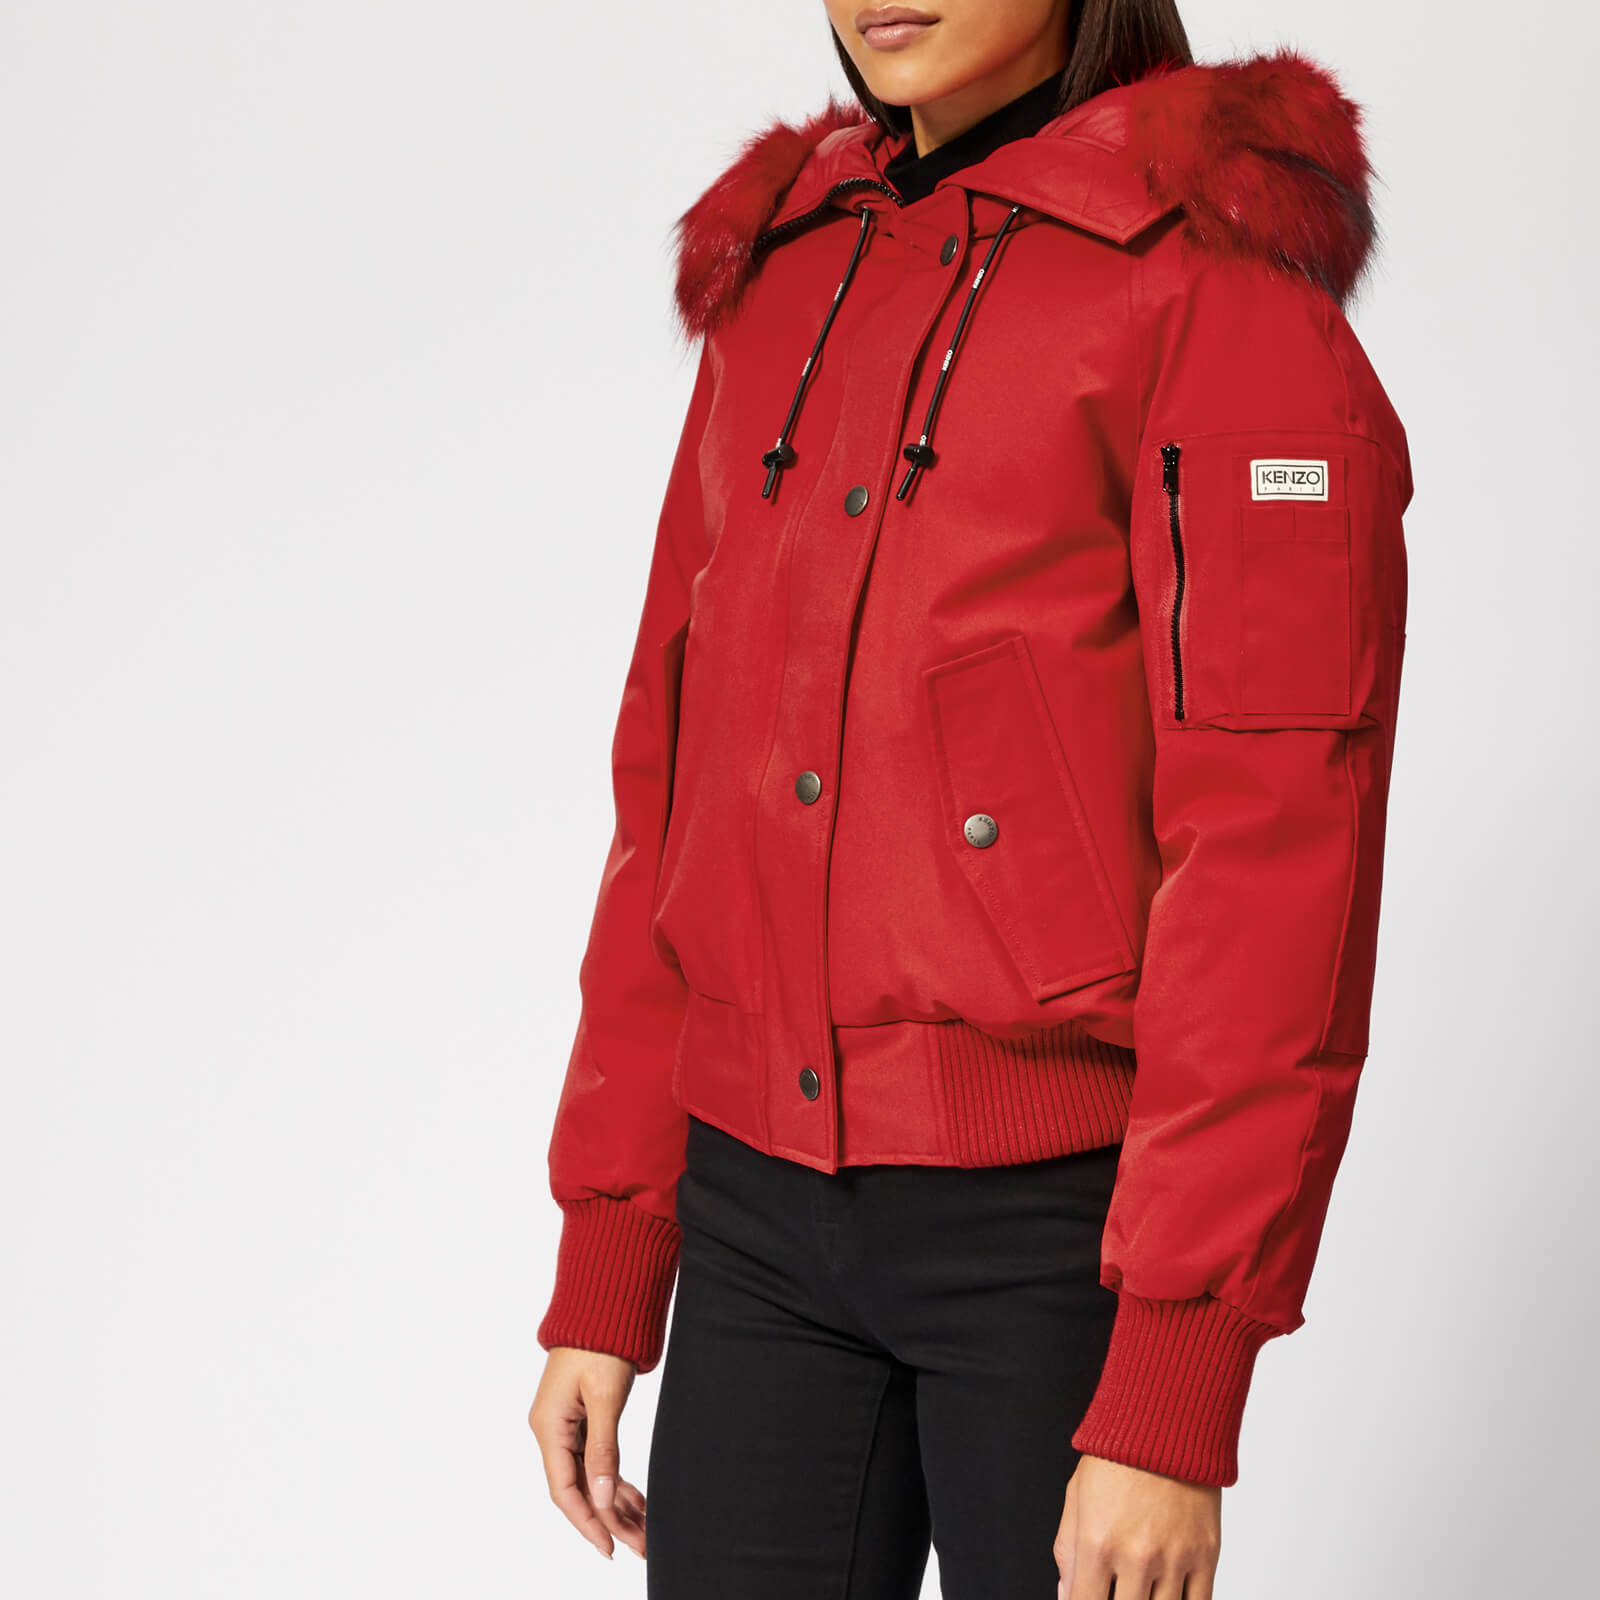 b639d6a749b3 KENZO Women s Technical Short Bomber Coat - Red - Free UK Delivery over £50